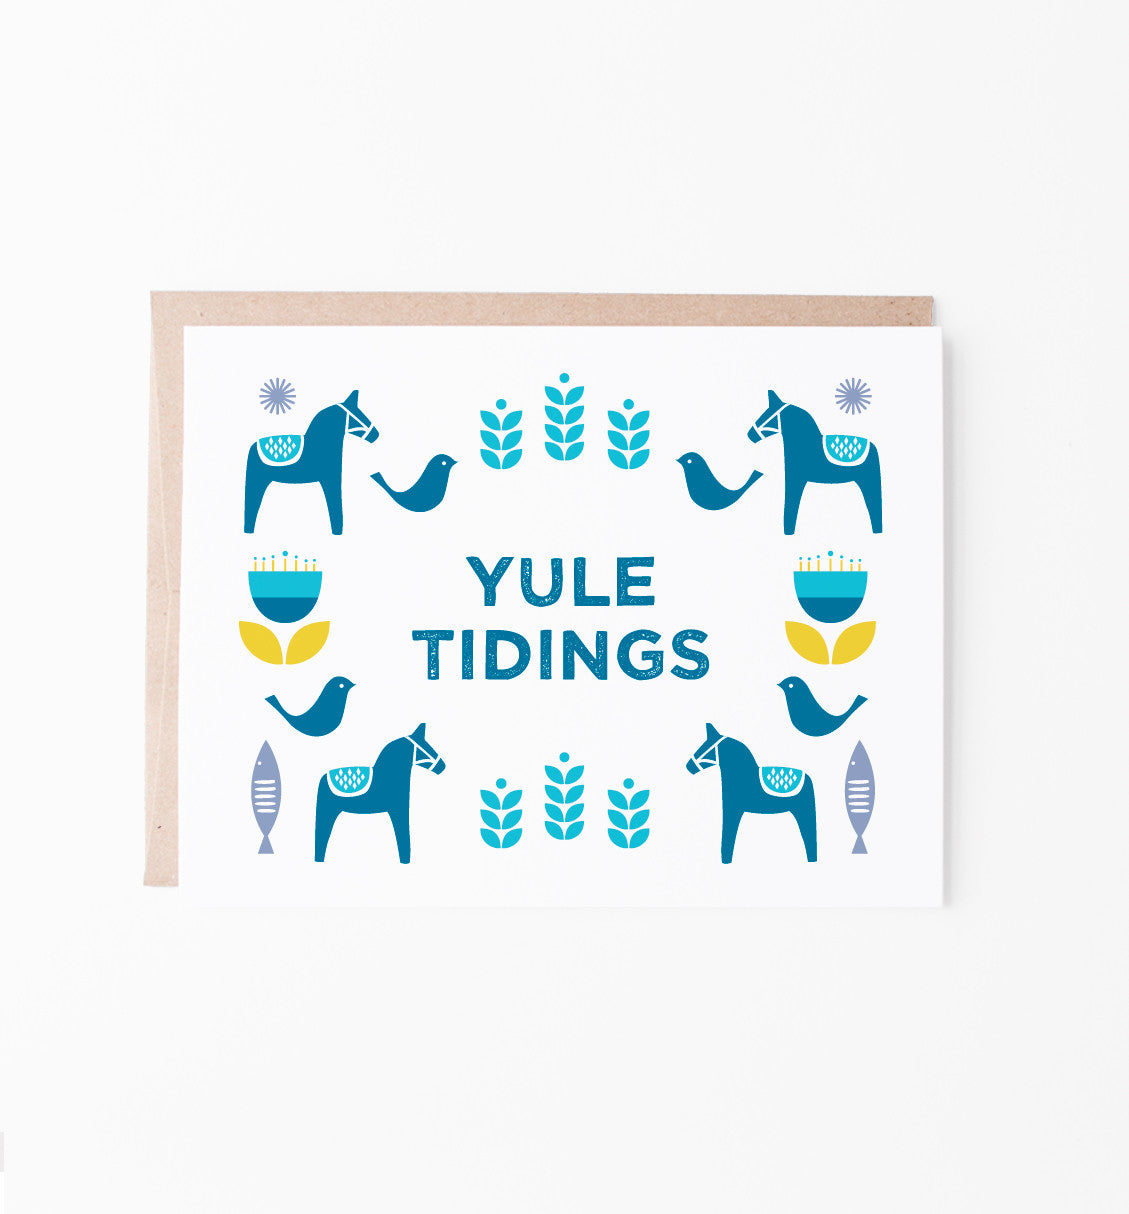 Yule Tidings holiday card